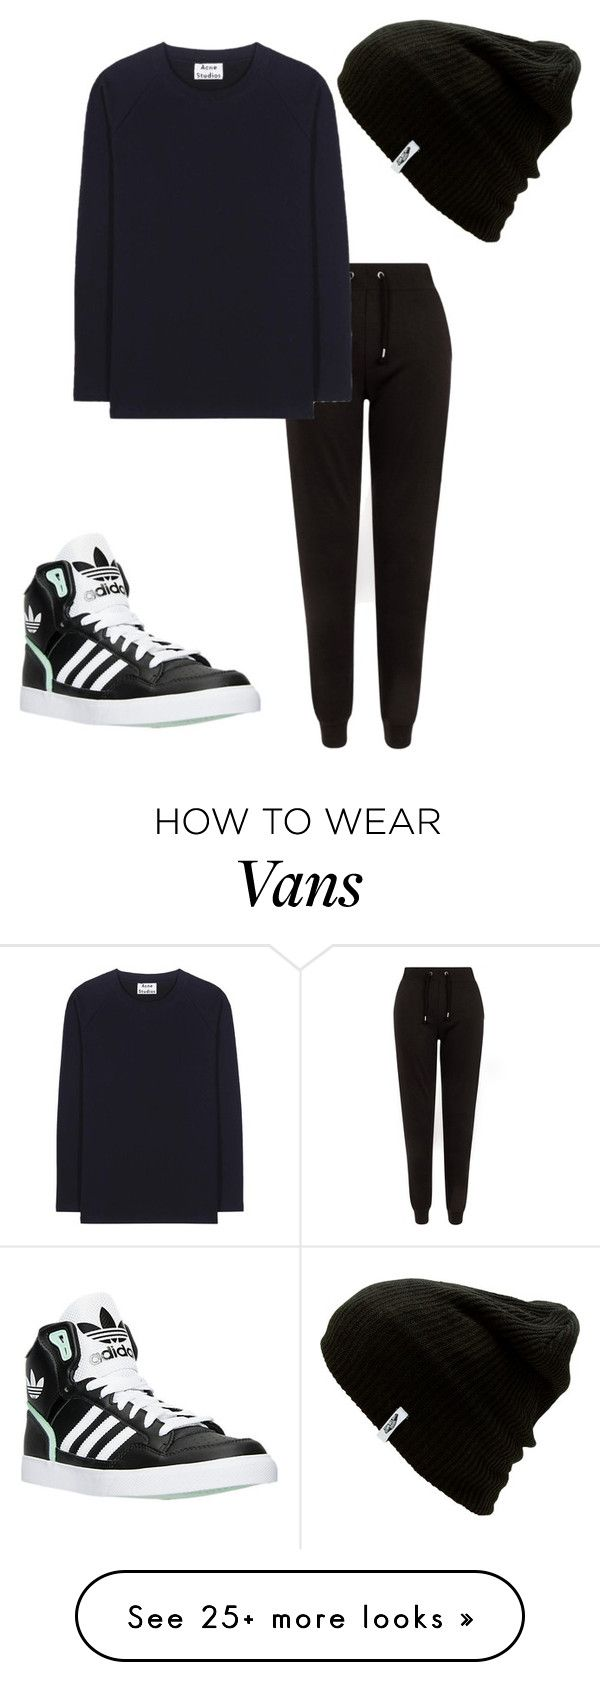 """black friday shopping (my outfit for this friday)"" by j-j-fandoms on Polyvore featuring New Look, adidas, Acne Studios and Vans"